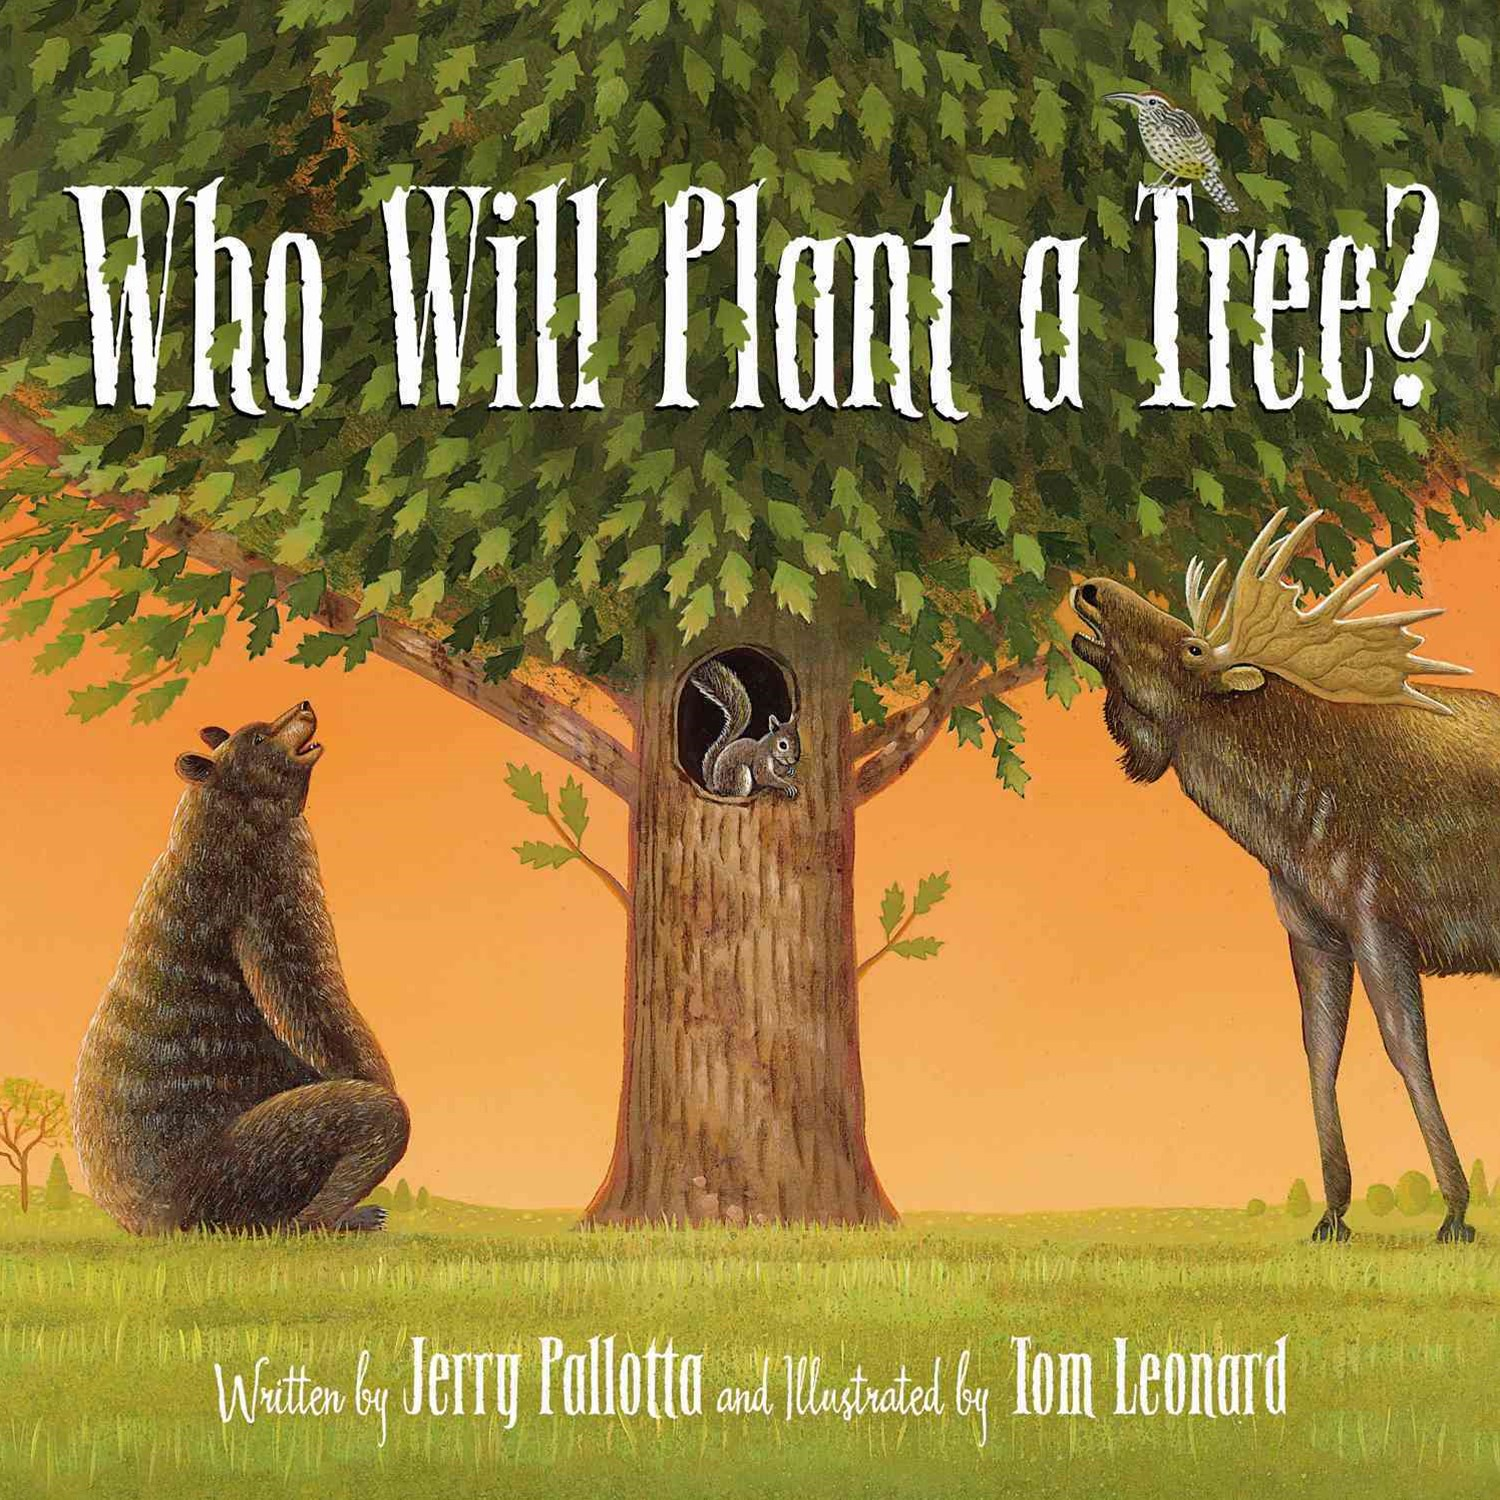 Who Will Plant a Tree?